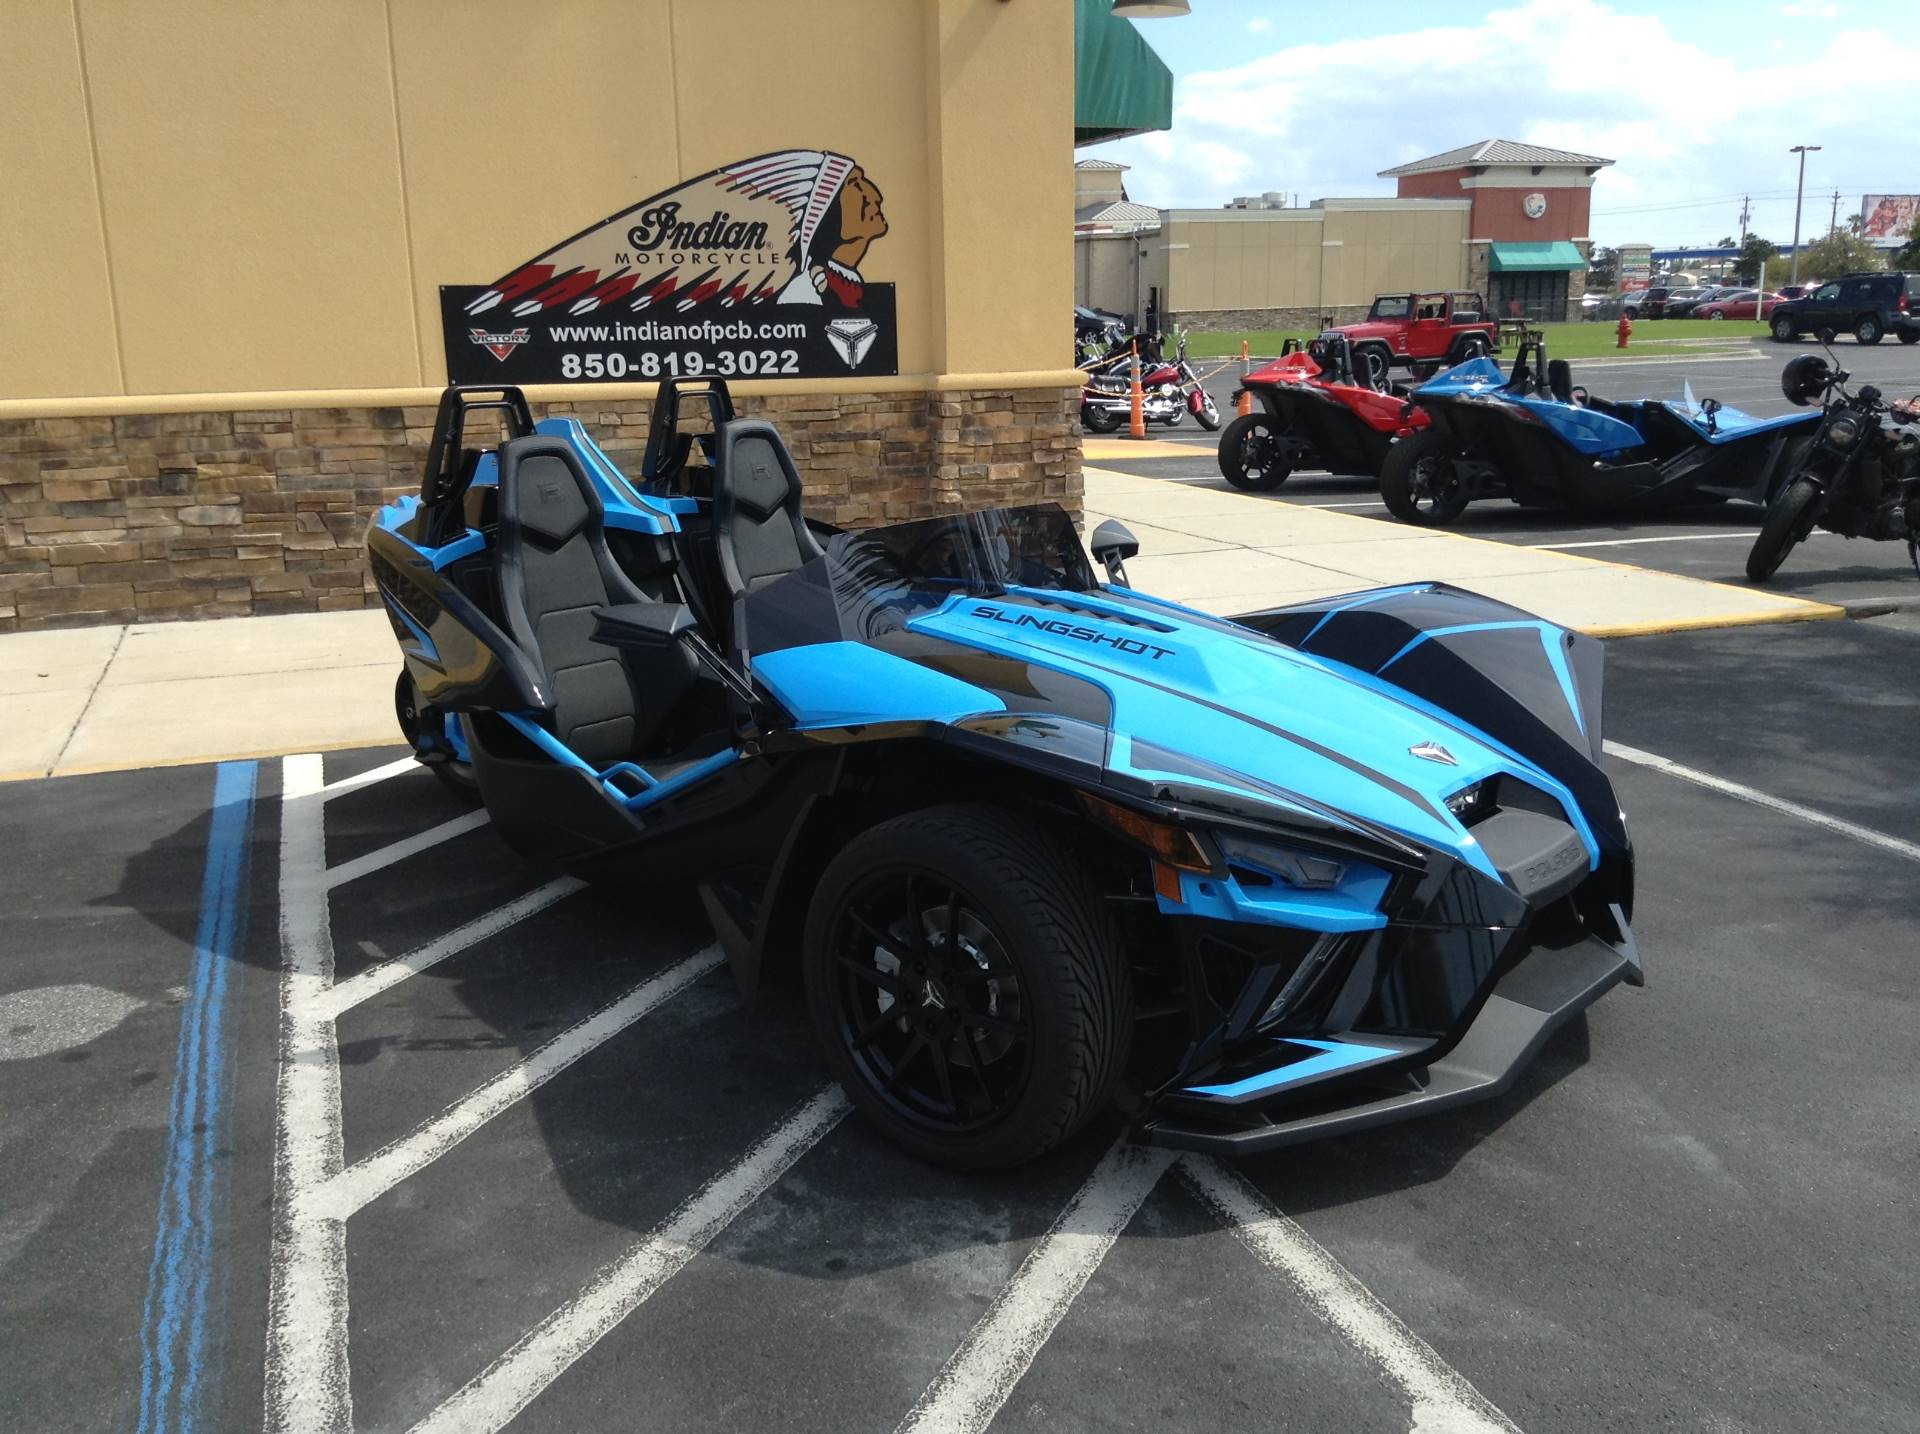 2020 Polaris SLINGSHOT in Panama City Beach, Florida - Photo 2